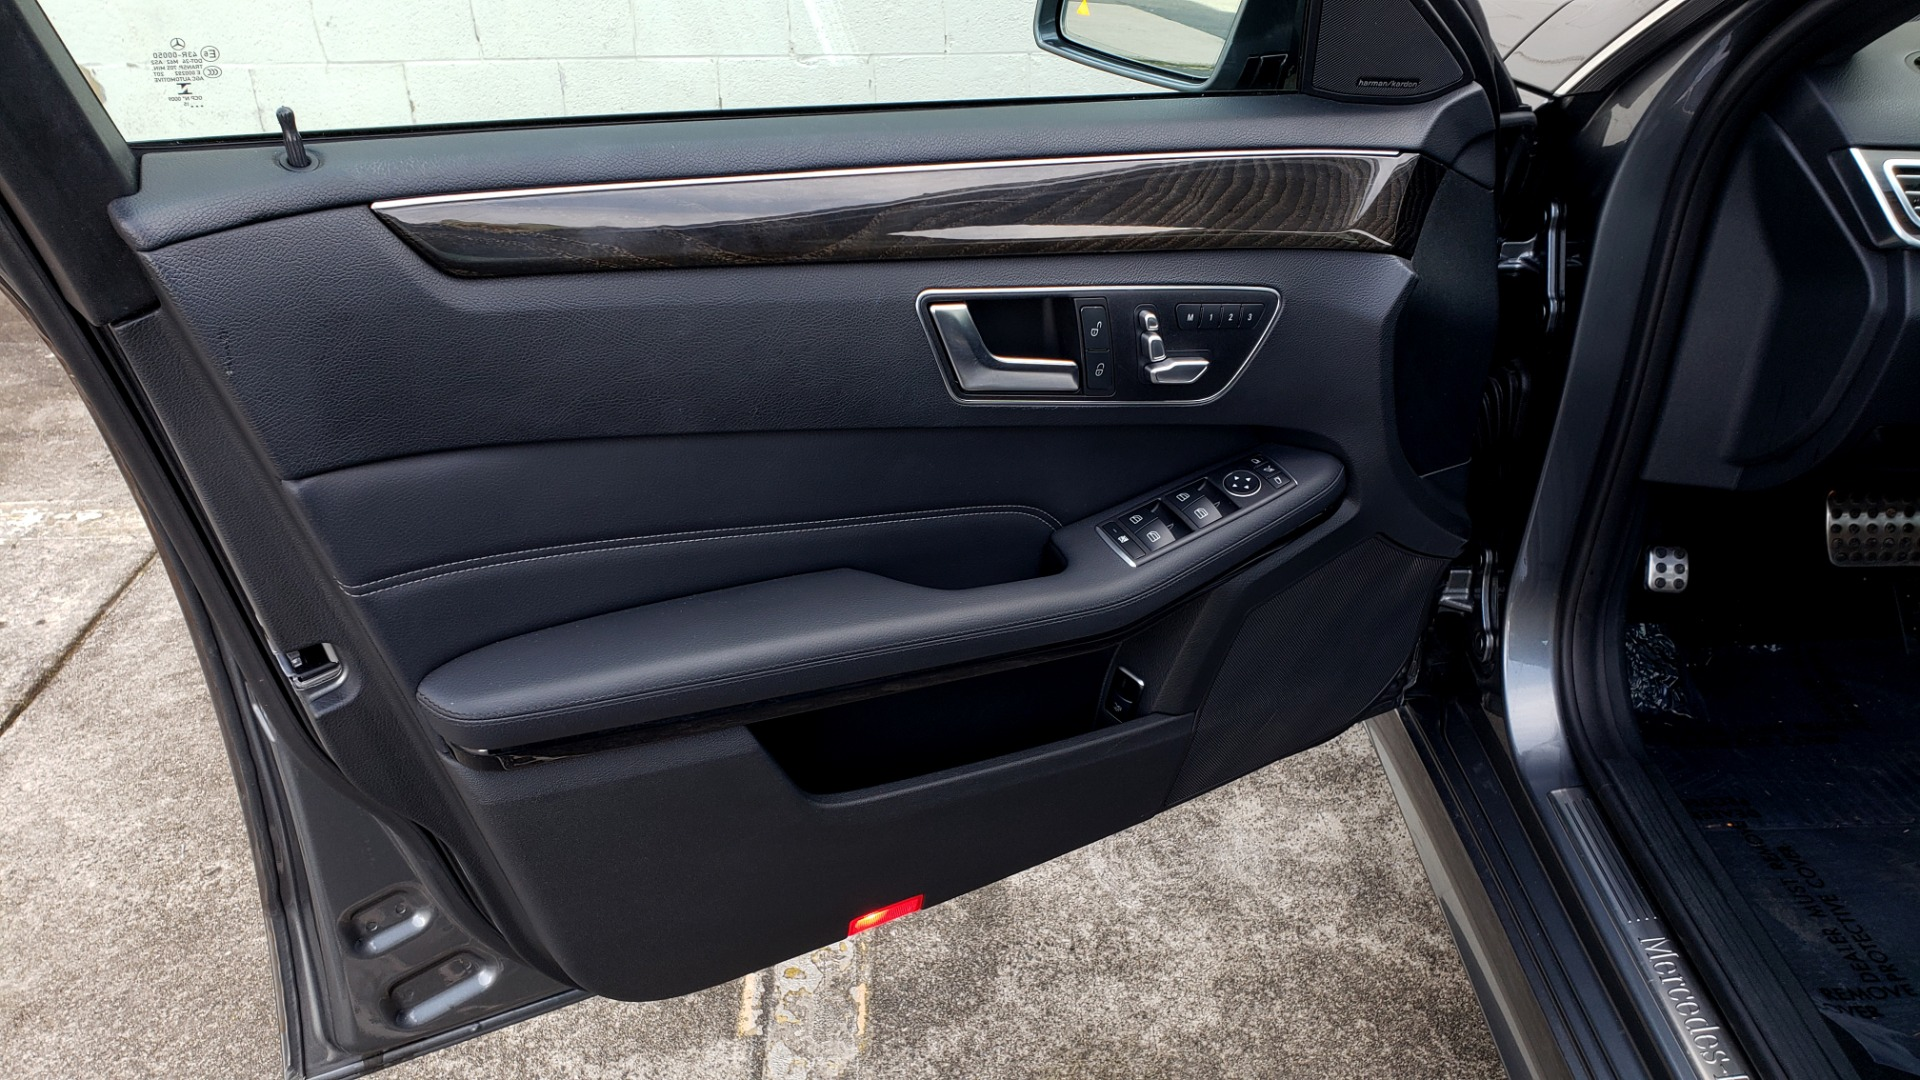 Used 2016 Mercedes-Benz E-CLASS E 350 PREM / KEYLESS-GO / NAV / SUNROOF / REARVIEW for sale Sold at Formula Imports in Charlotte NC 28227 29